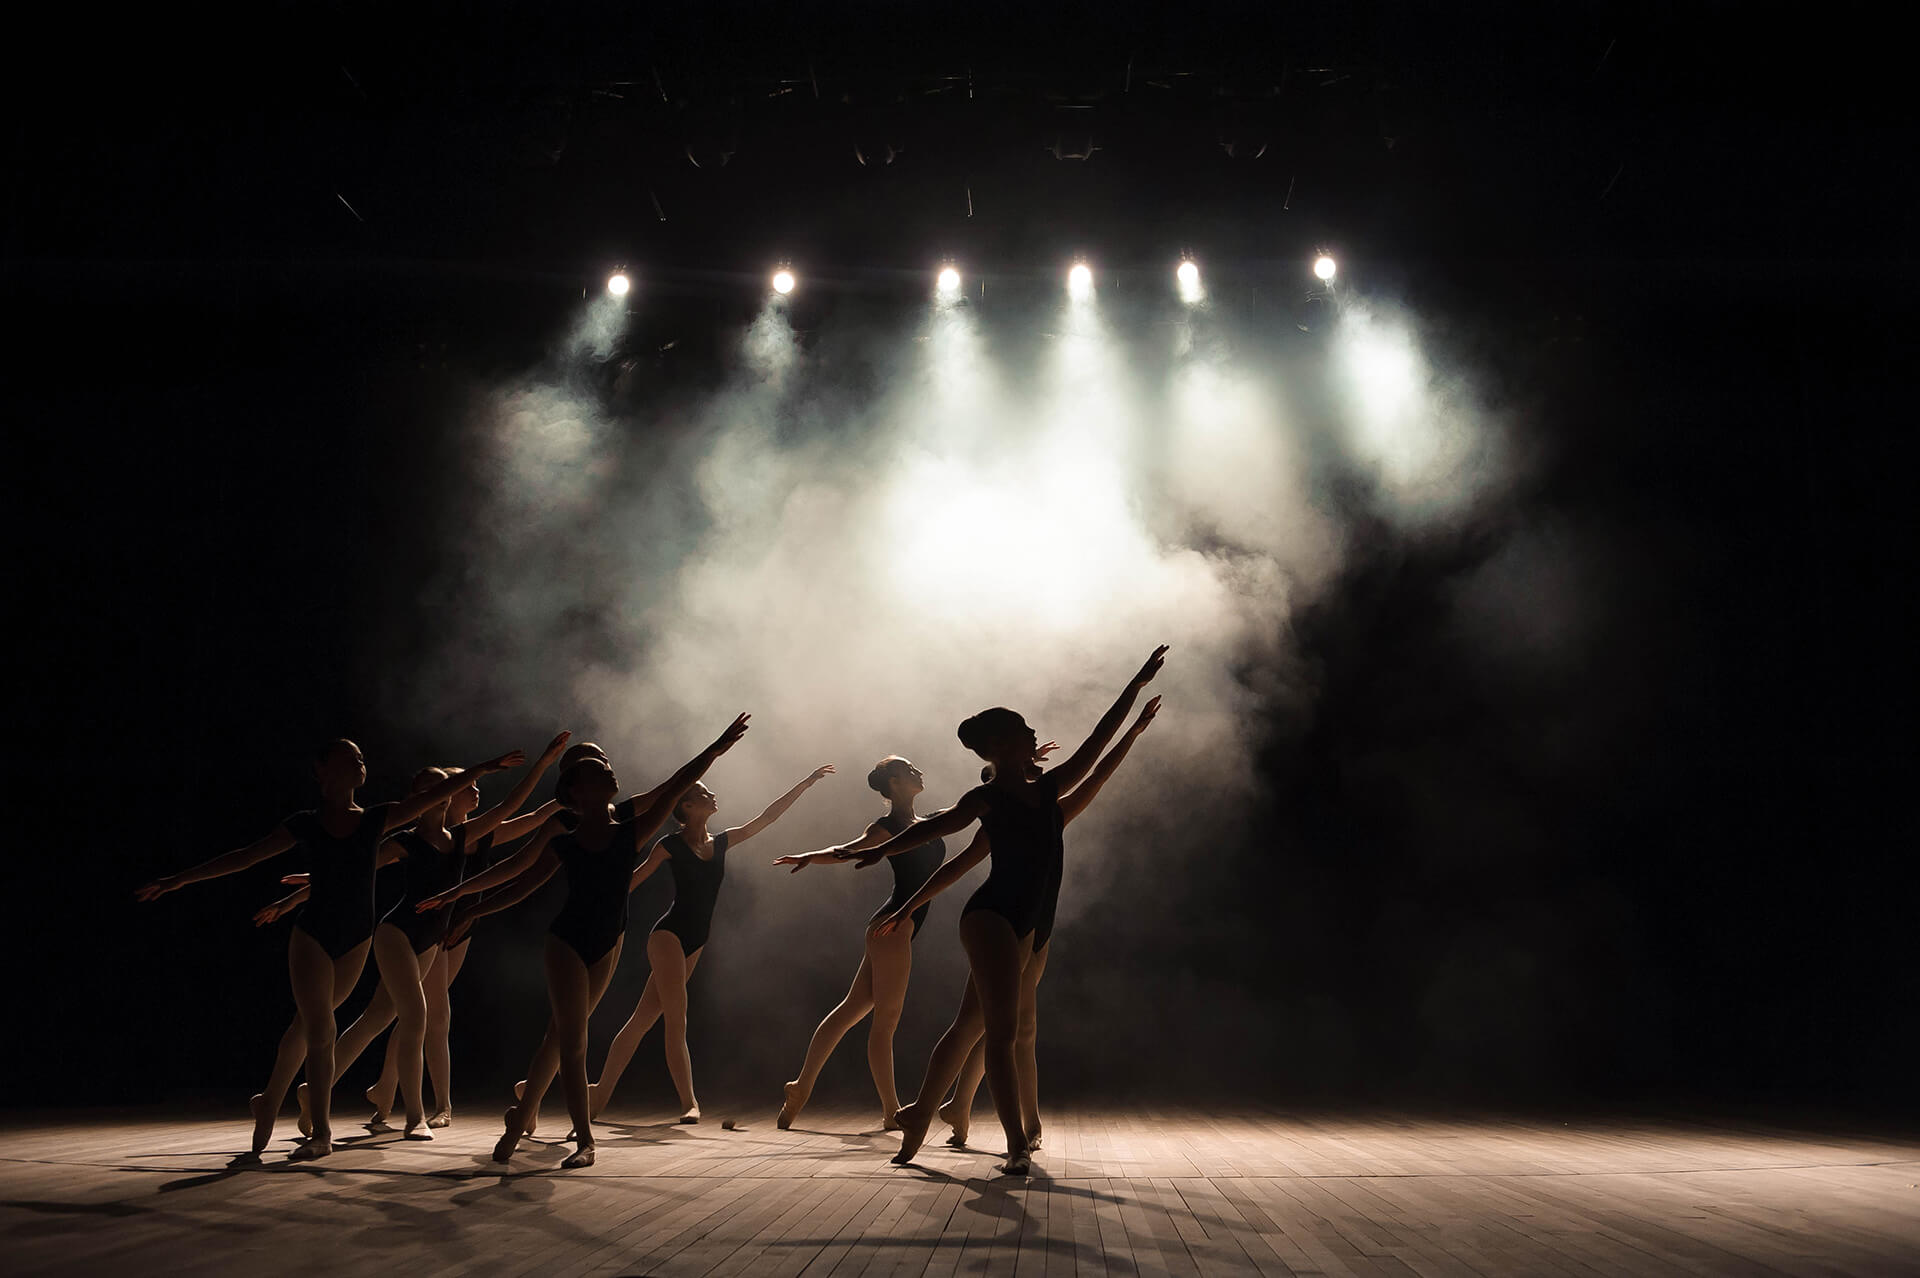 ballet-class-stage-theater-with-light-smoke-children-are-engaged-classical-exercise-stage